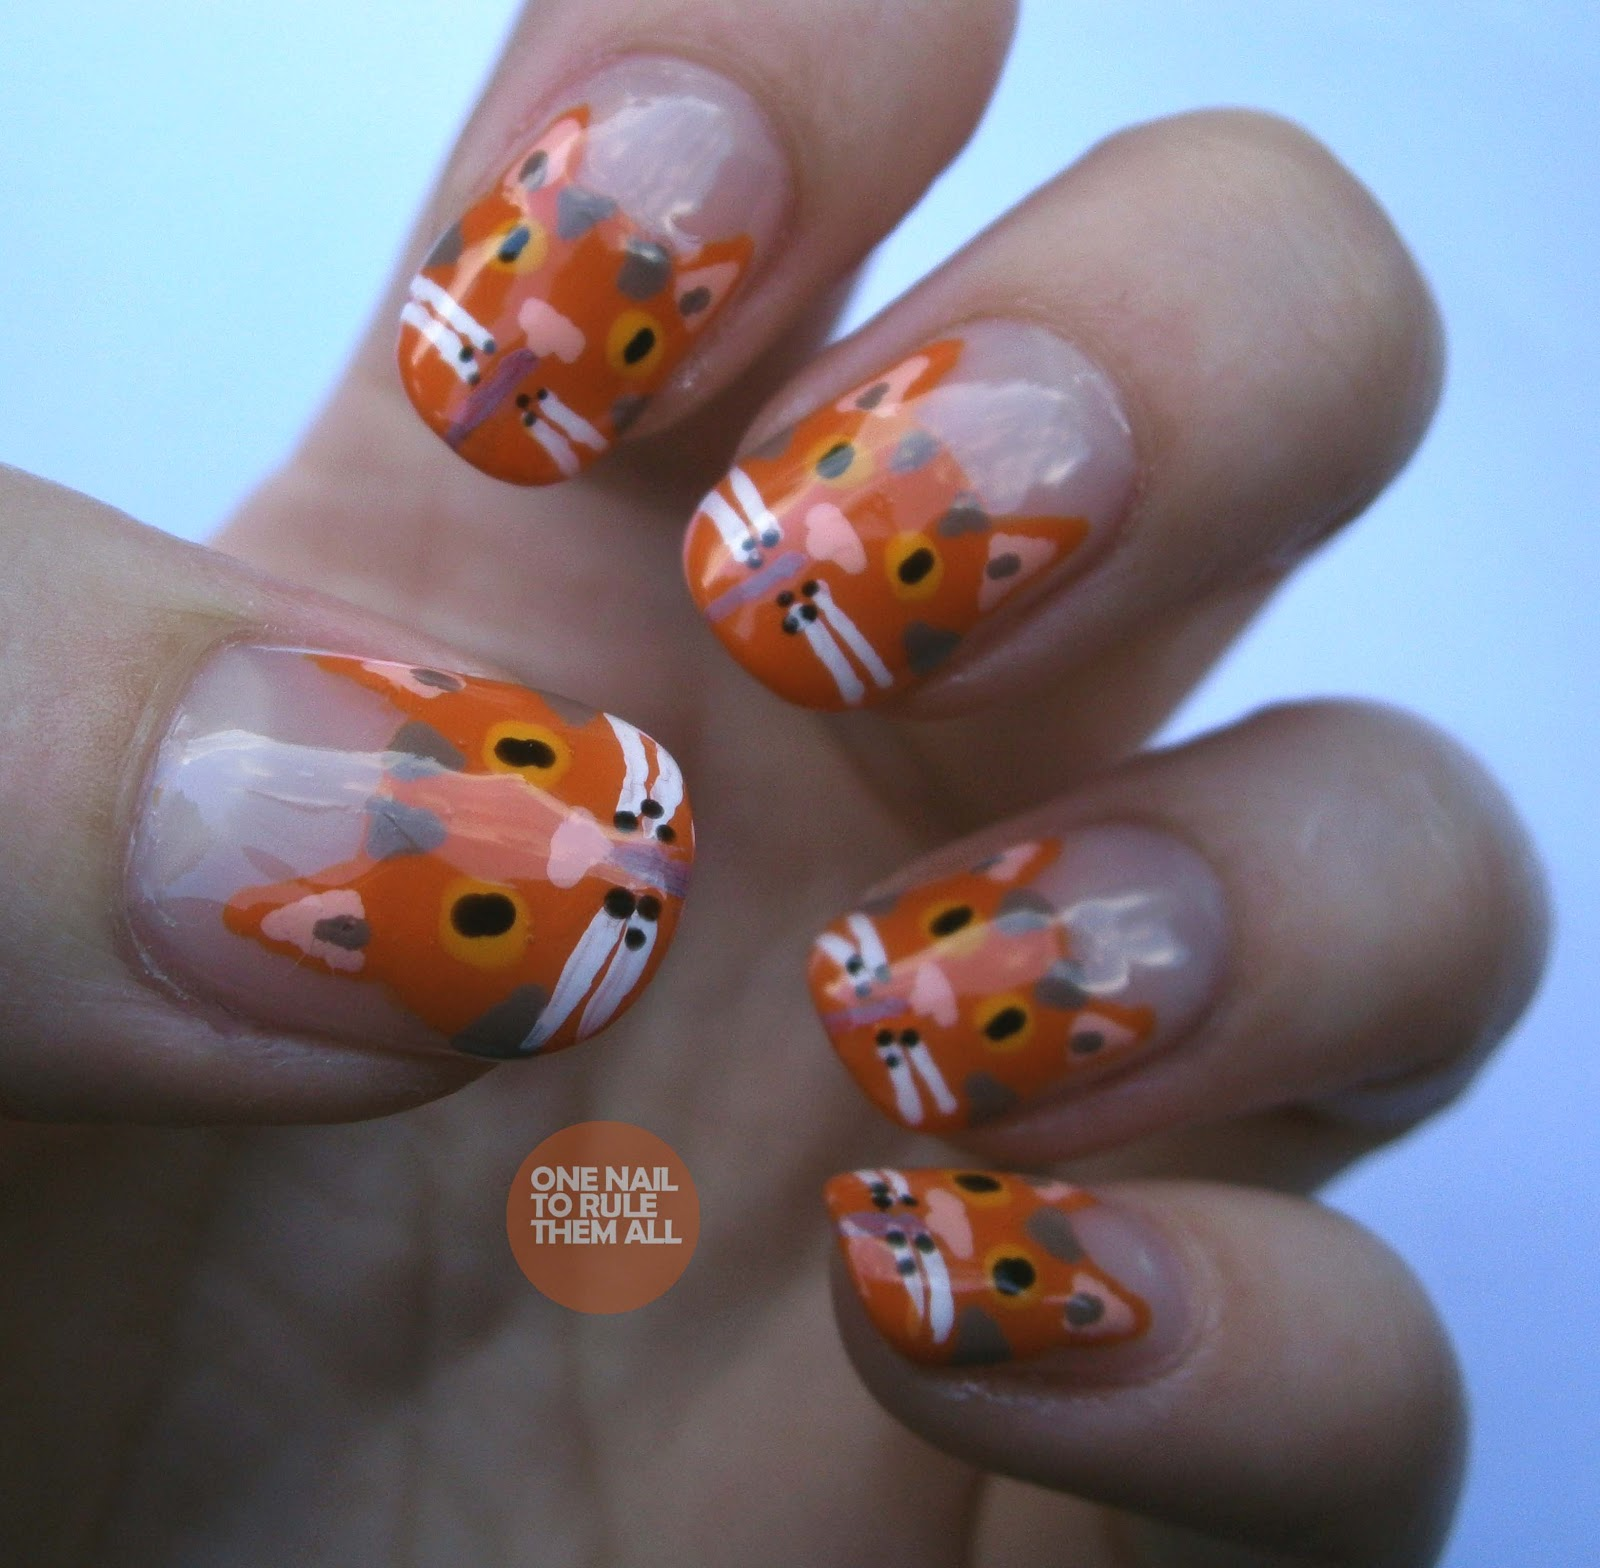 One Nail To Rule Them All: Day 2: Orange (ginger) nails